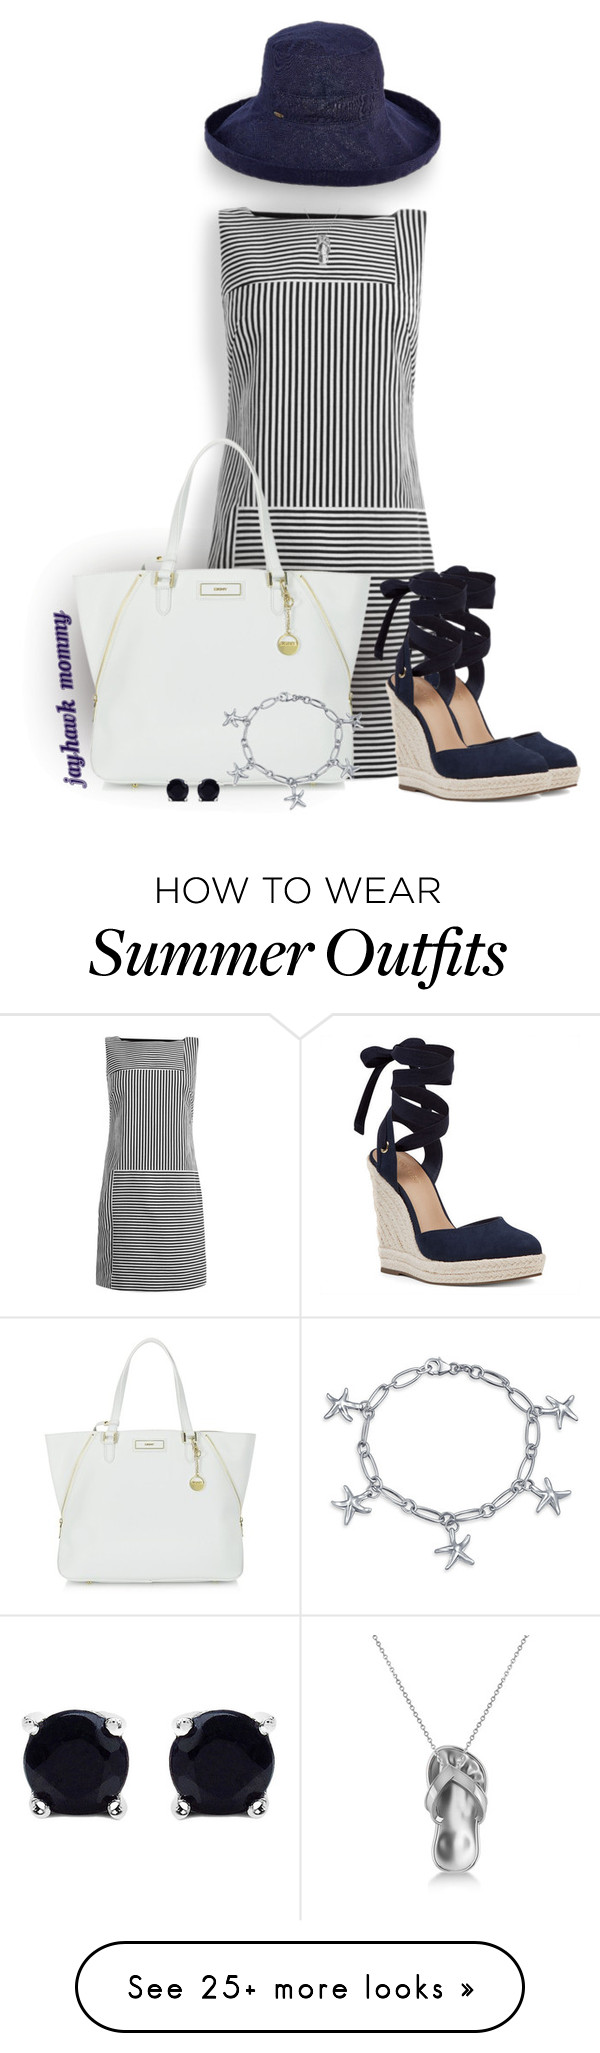 """""""Cape Cod Summer"""" by jayhawkmommy on Polyvore featuring Maryling, Nine West, DKNY, Scala, Allurez, Bling Jewelry and Malaika"""